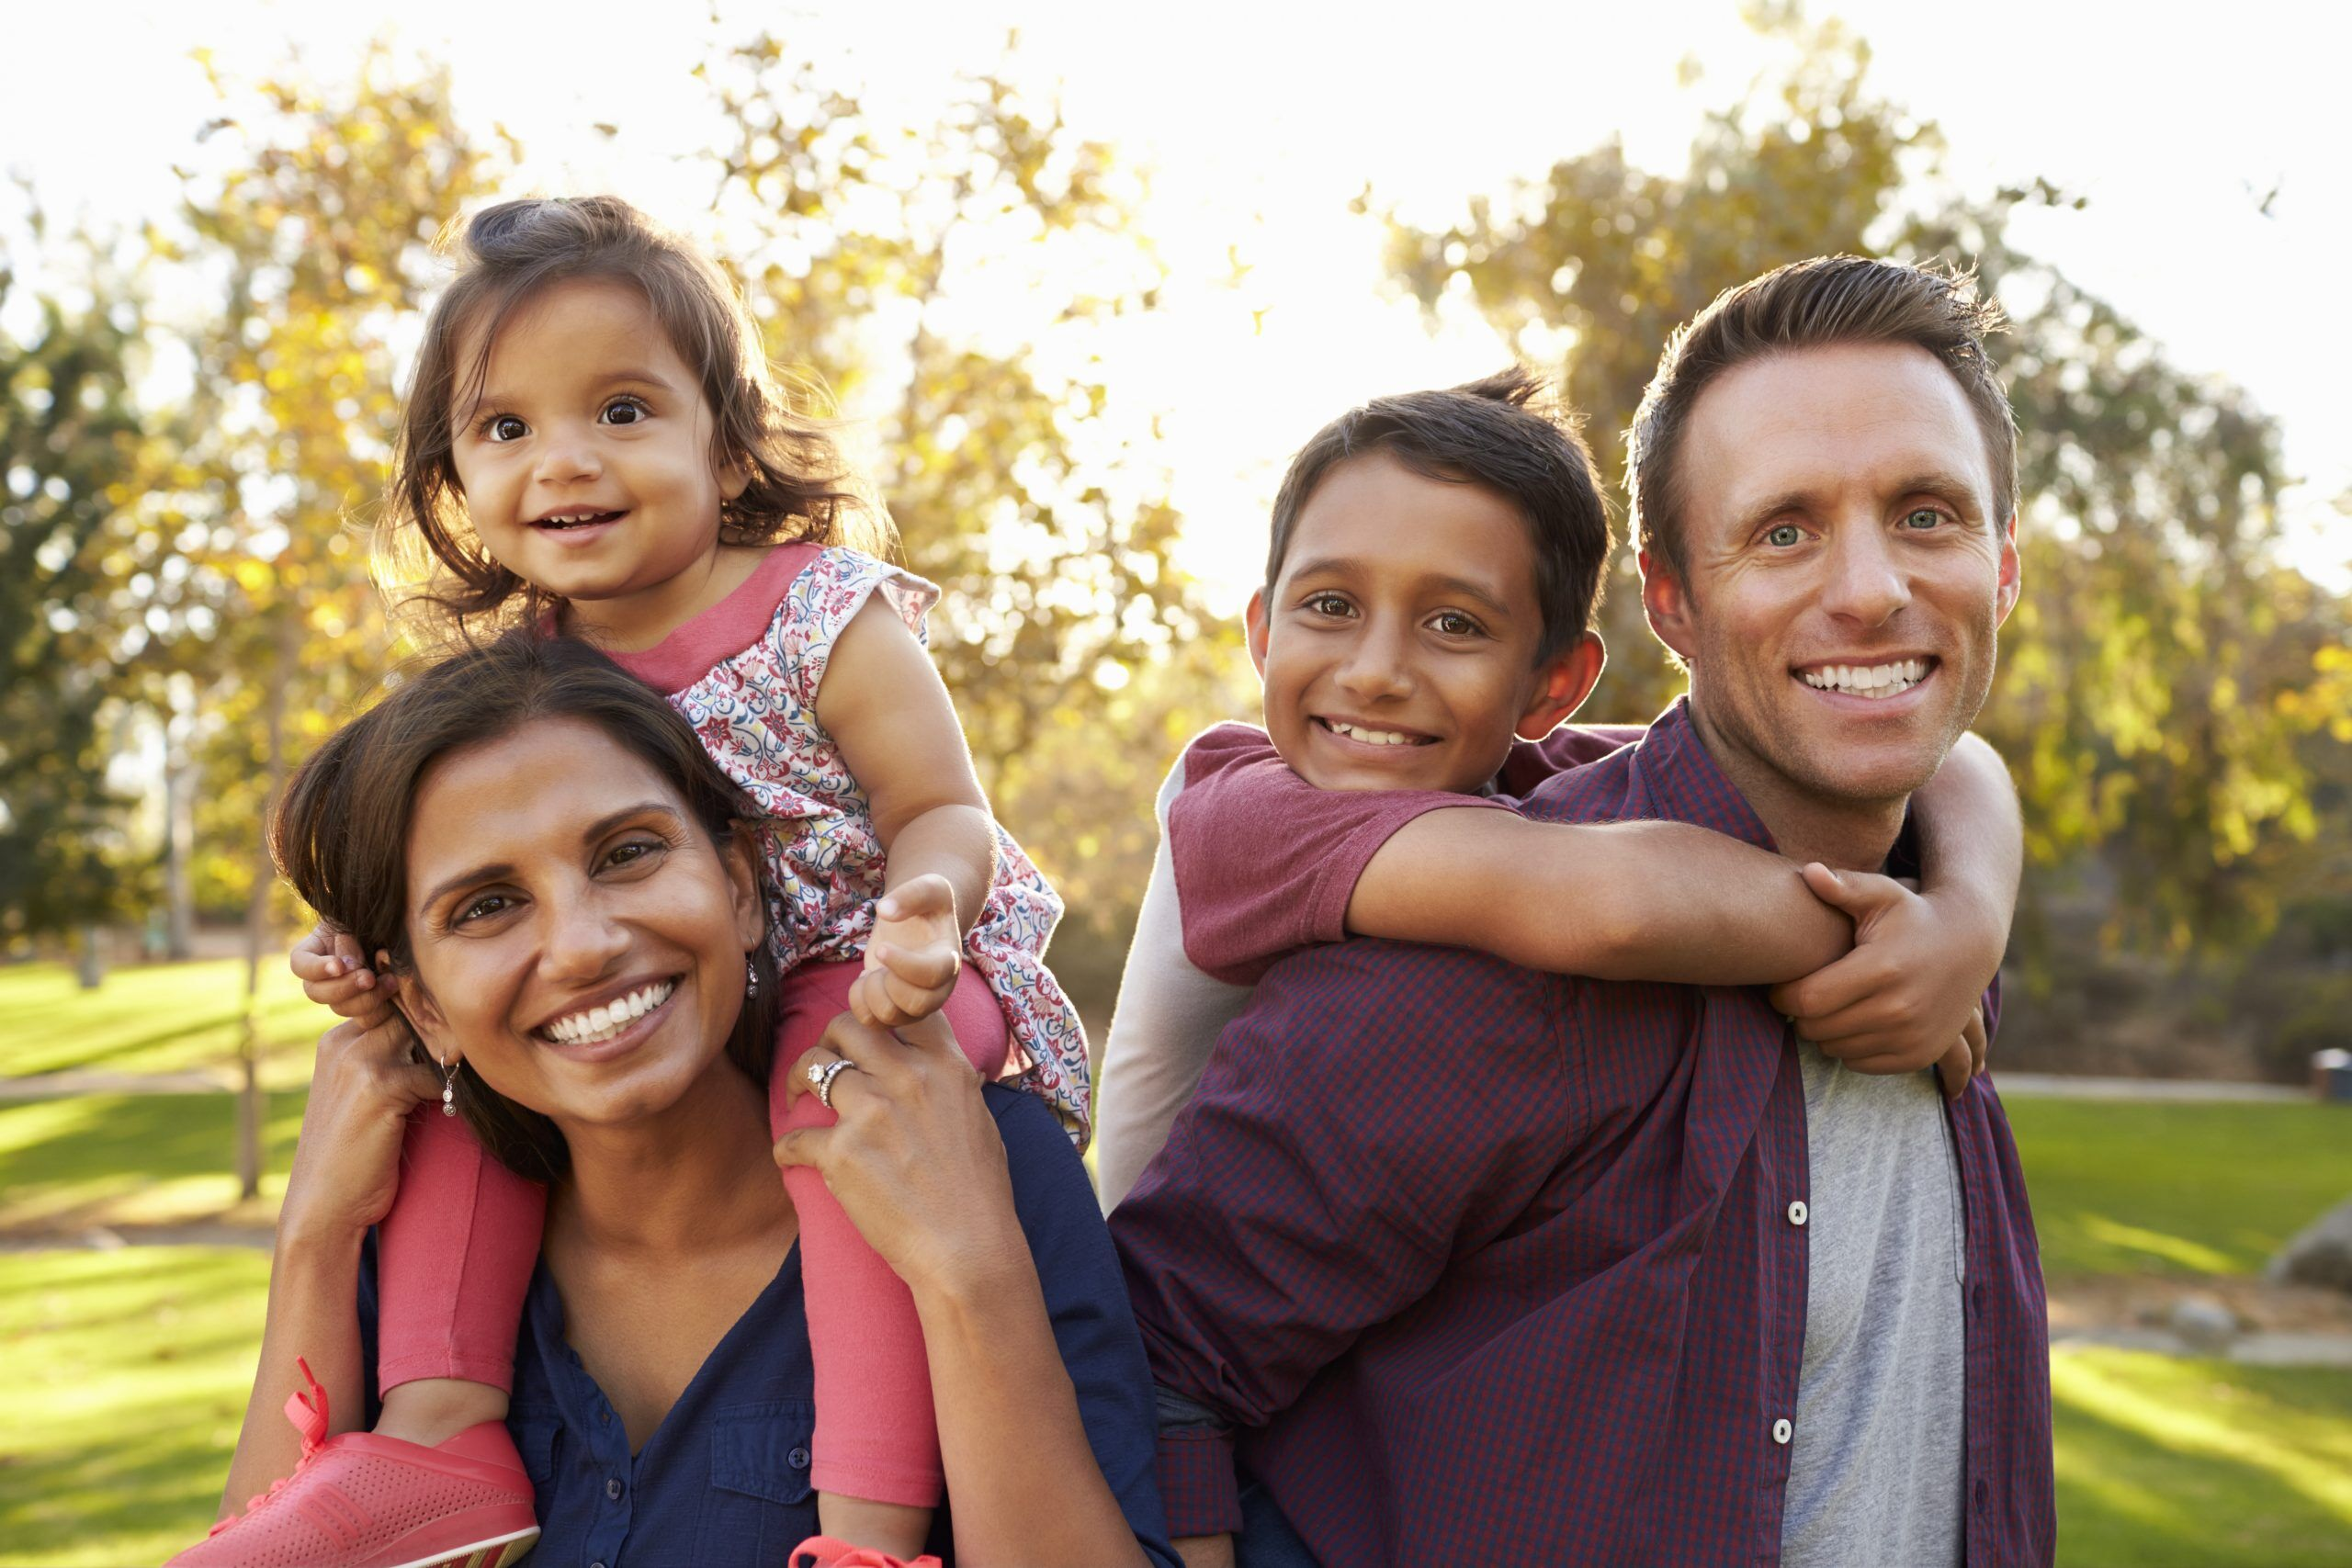 Veneers | Tooth Extractions - Advanced Healthcare - Bankstown Family Dentist